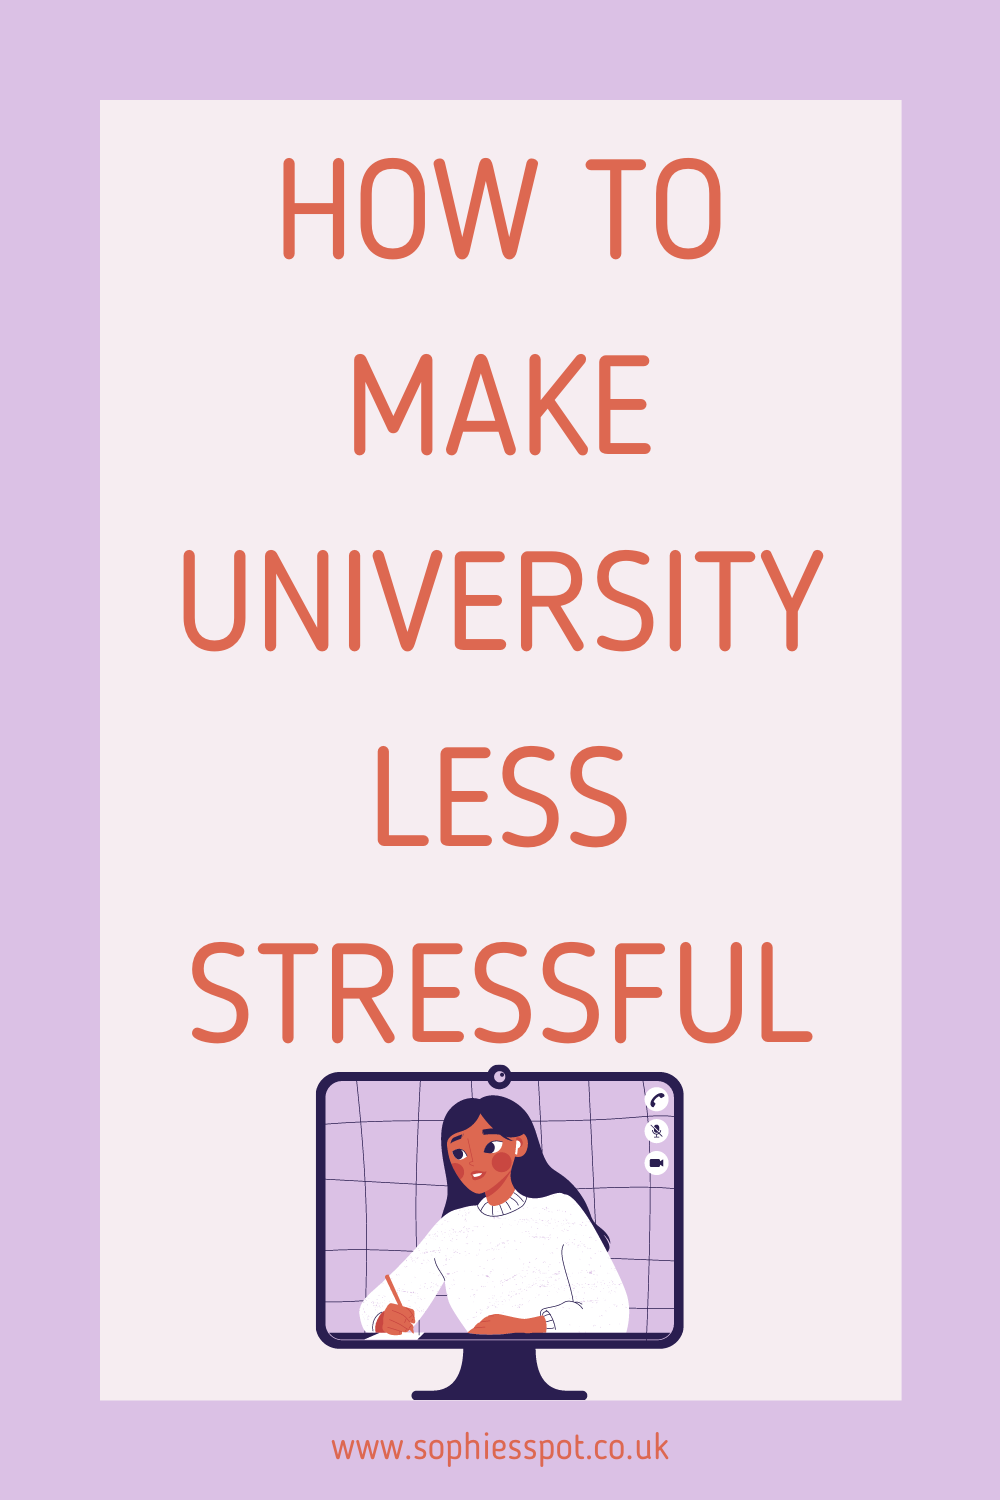 How to make university less stressful graphic